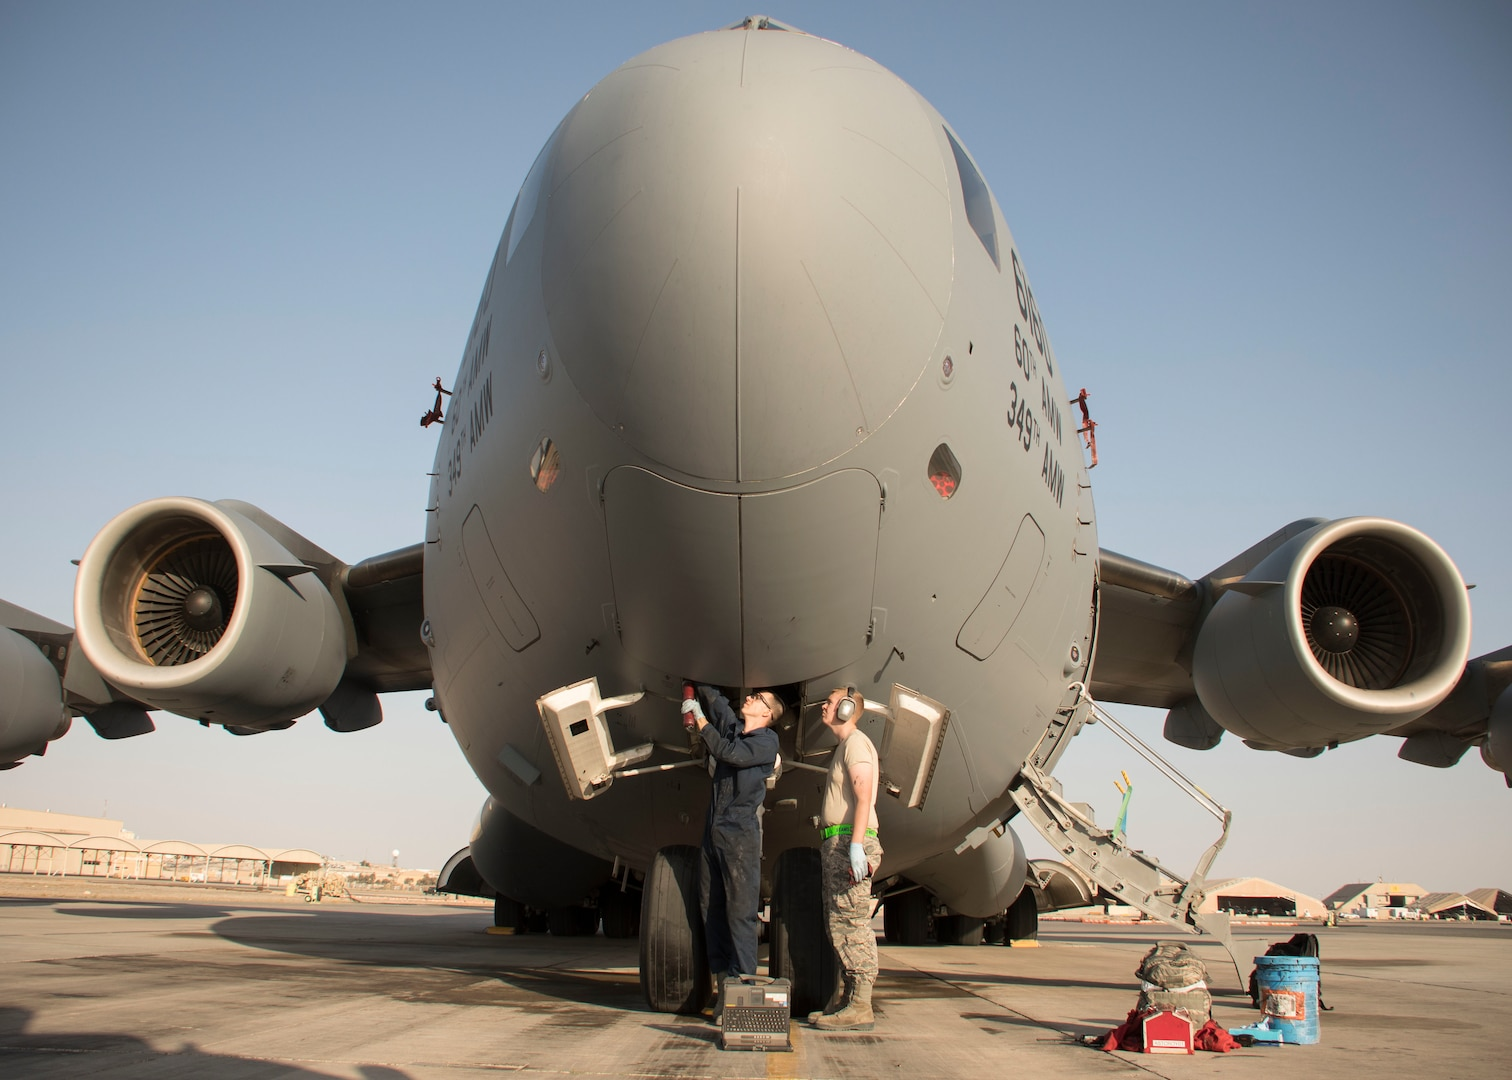 Two Airmen from the 5th Expeditionary Air Mobility Squadron, grease points on the nose landing gear of a C-17 Globemaster III during a post-flight inspection at an undisclosed location in Southwest Asia Jan. 13, 2017. The squadron flies an average of 2,500 sorties a year, moving 180,000 personnel and 80,000 tons of cargo. (U.S. Air Force photo/Senior Airman Andrew Park)